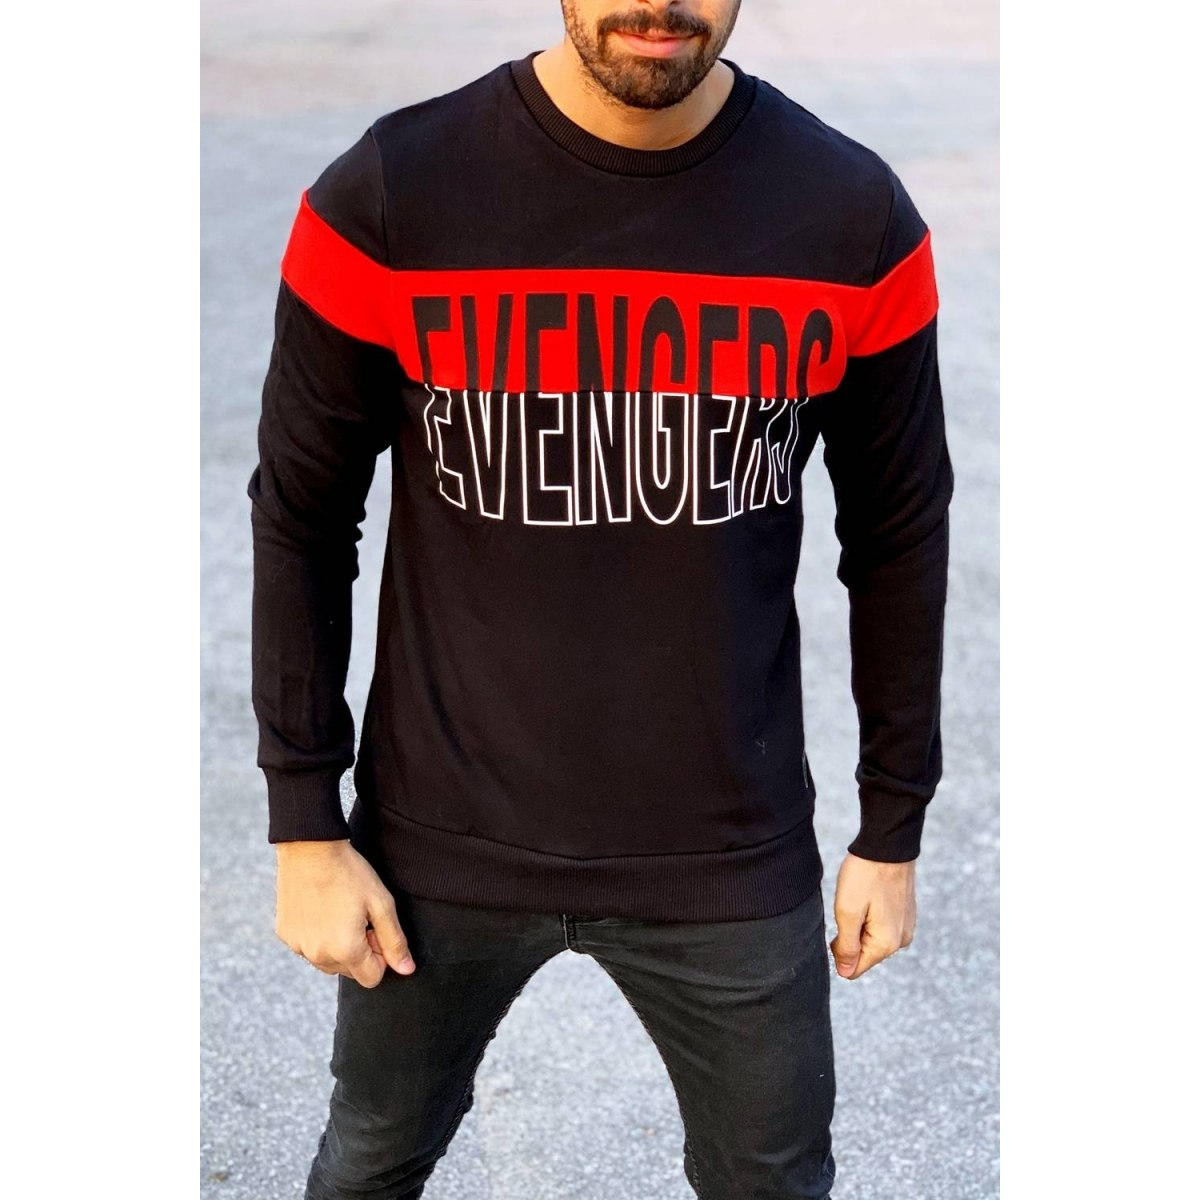 Evengers Sweatshirt in Black